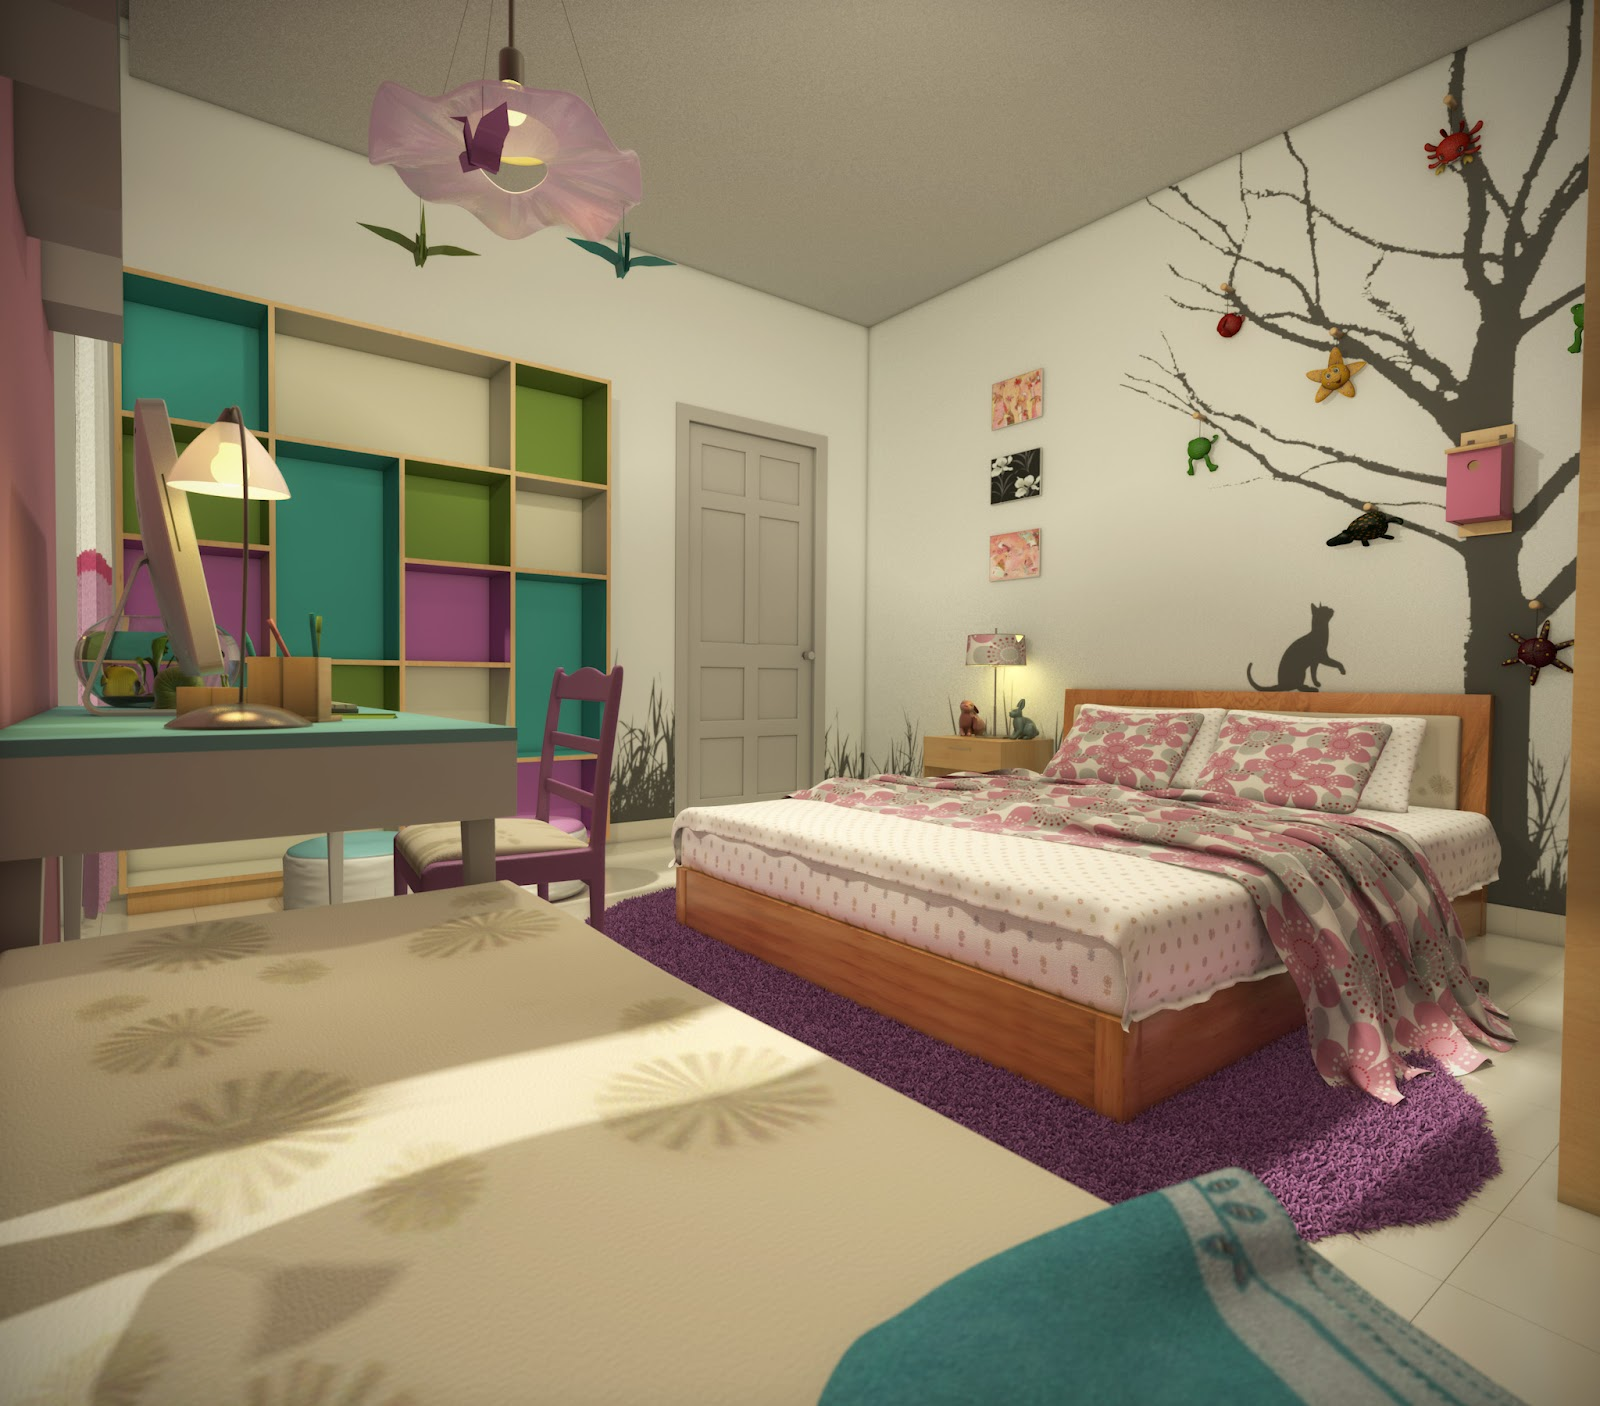 Old Girl Bedrooms: Khoi's Blog: 12-year-old Girl's Room